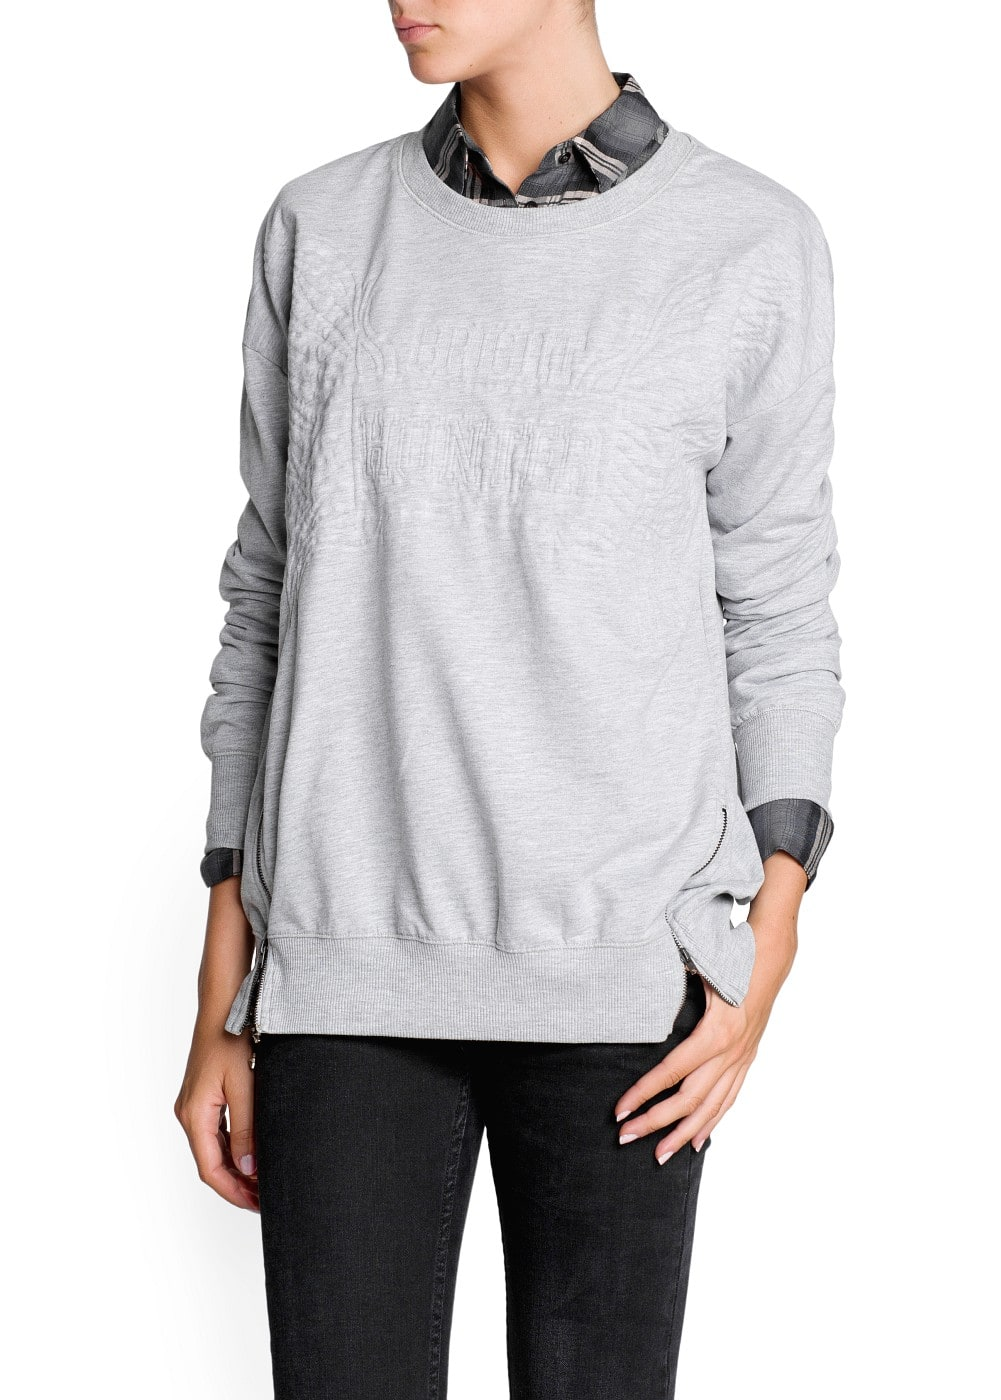 Zipped side quilted sweatshirt